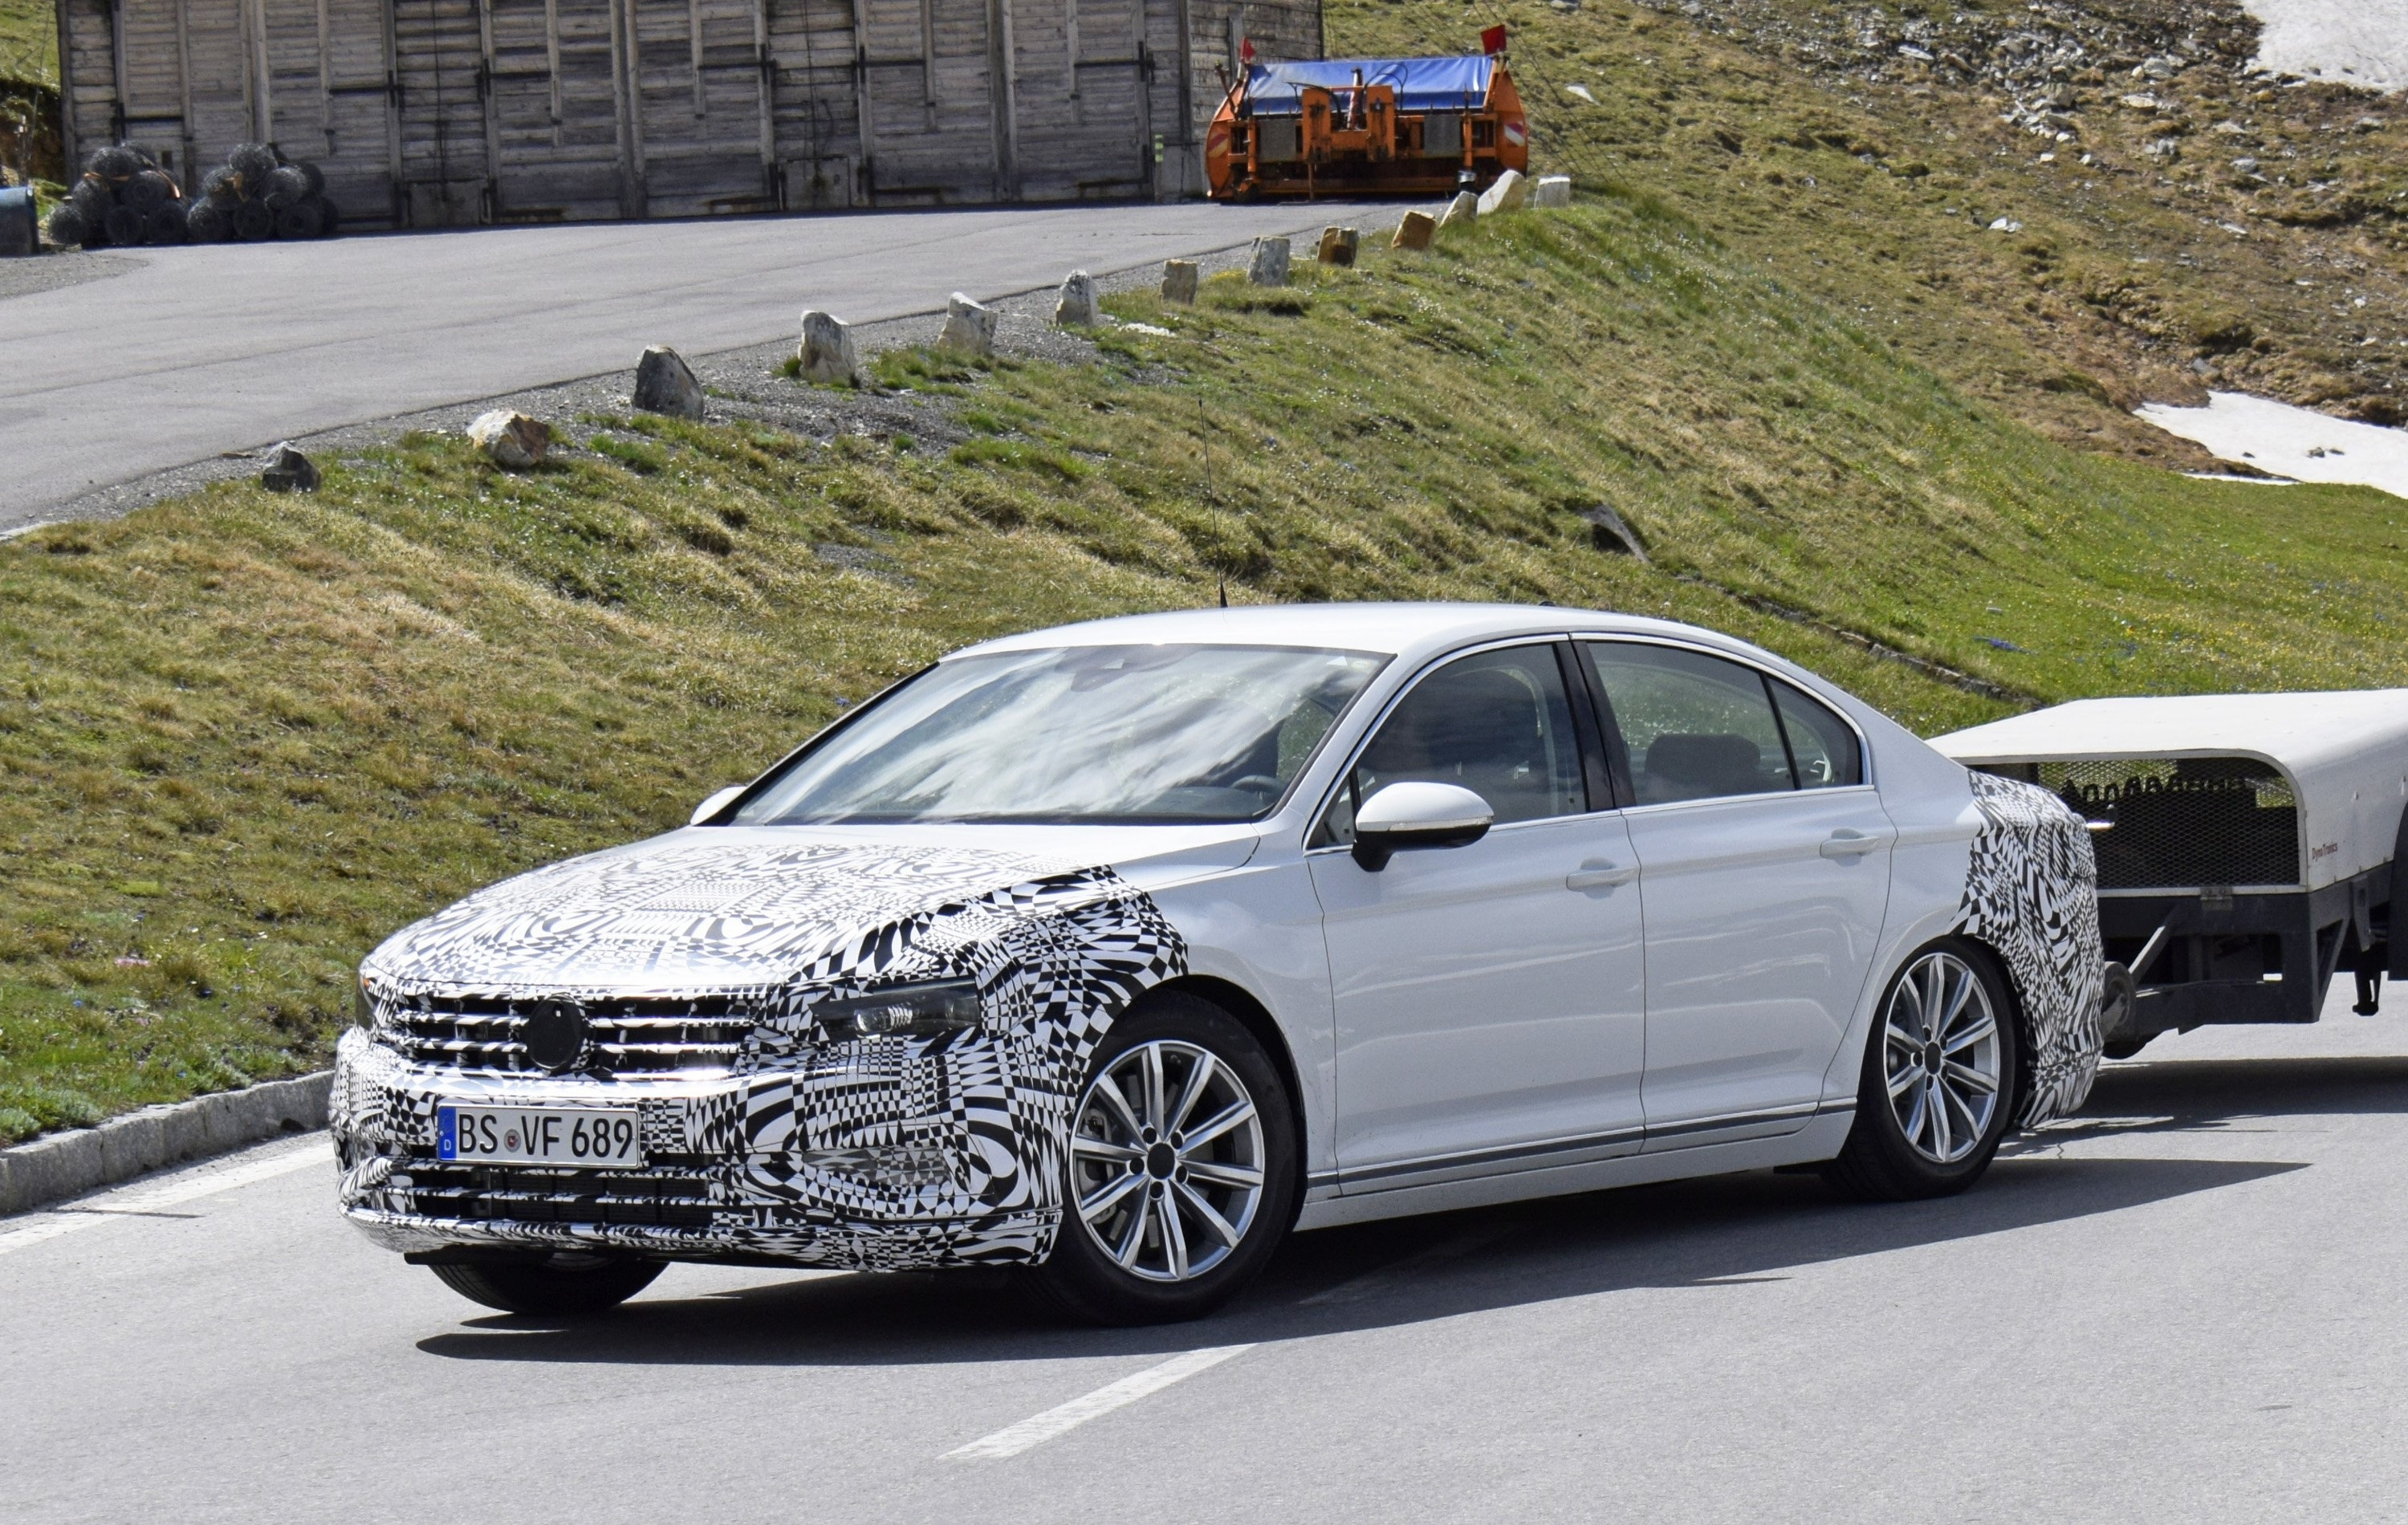 84 New Next Generation Vw Cc New Model and Performance